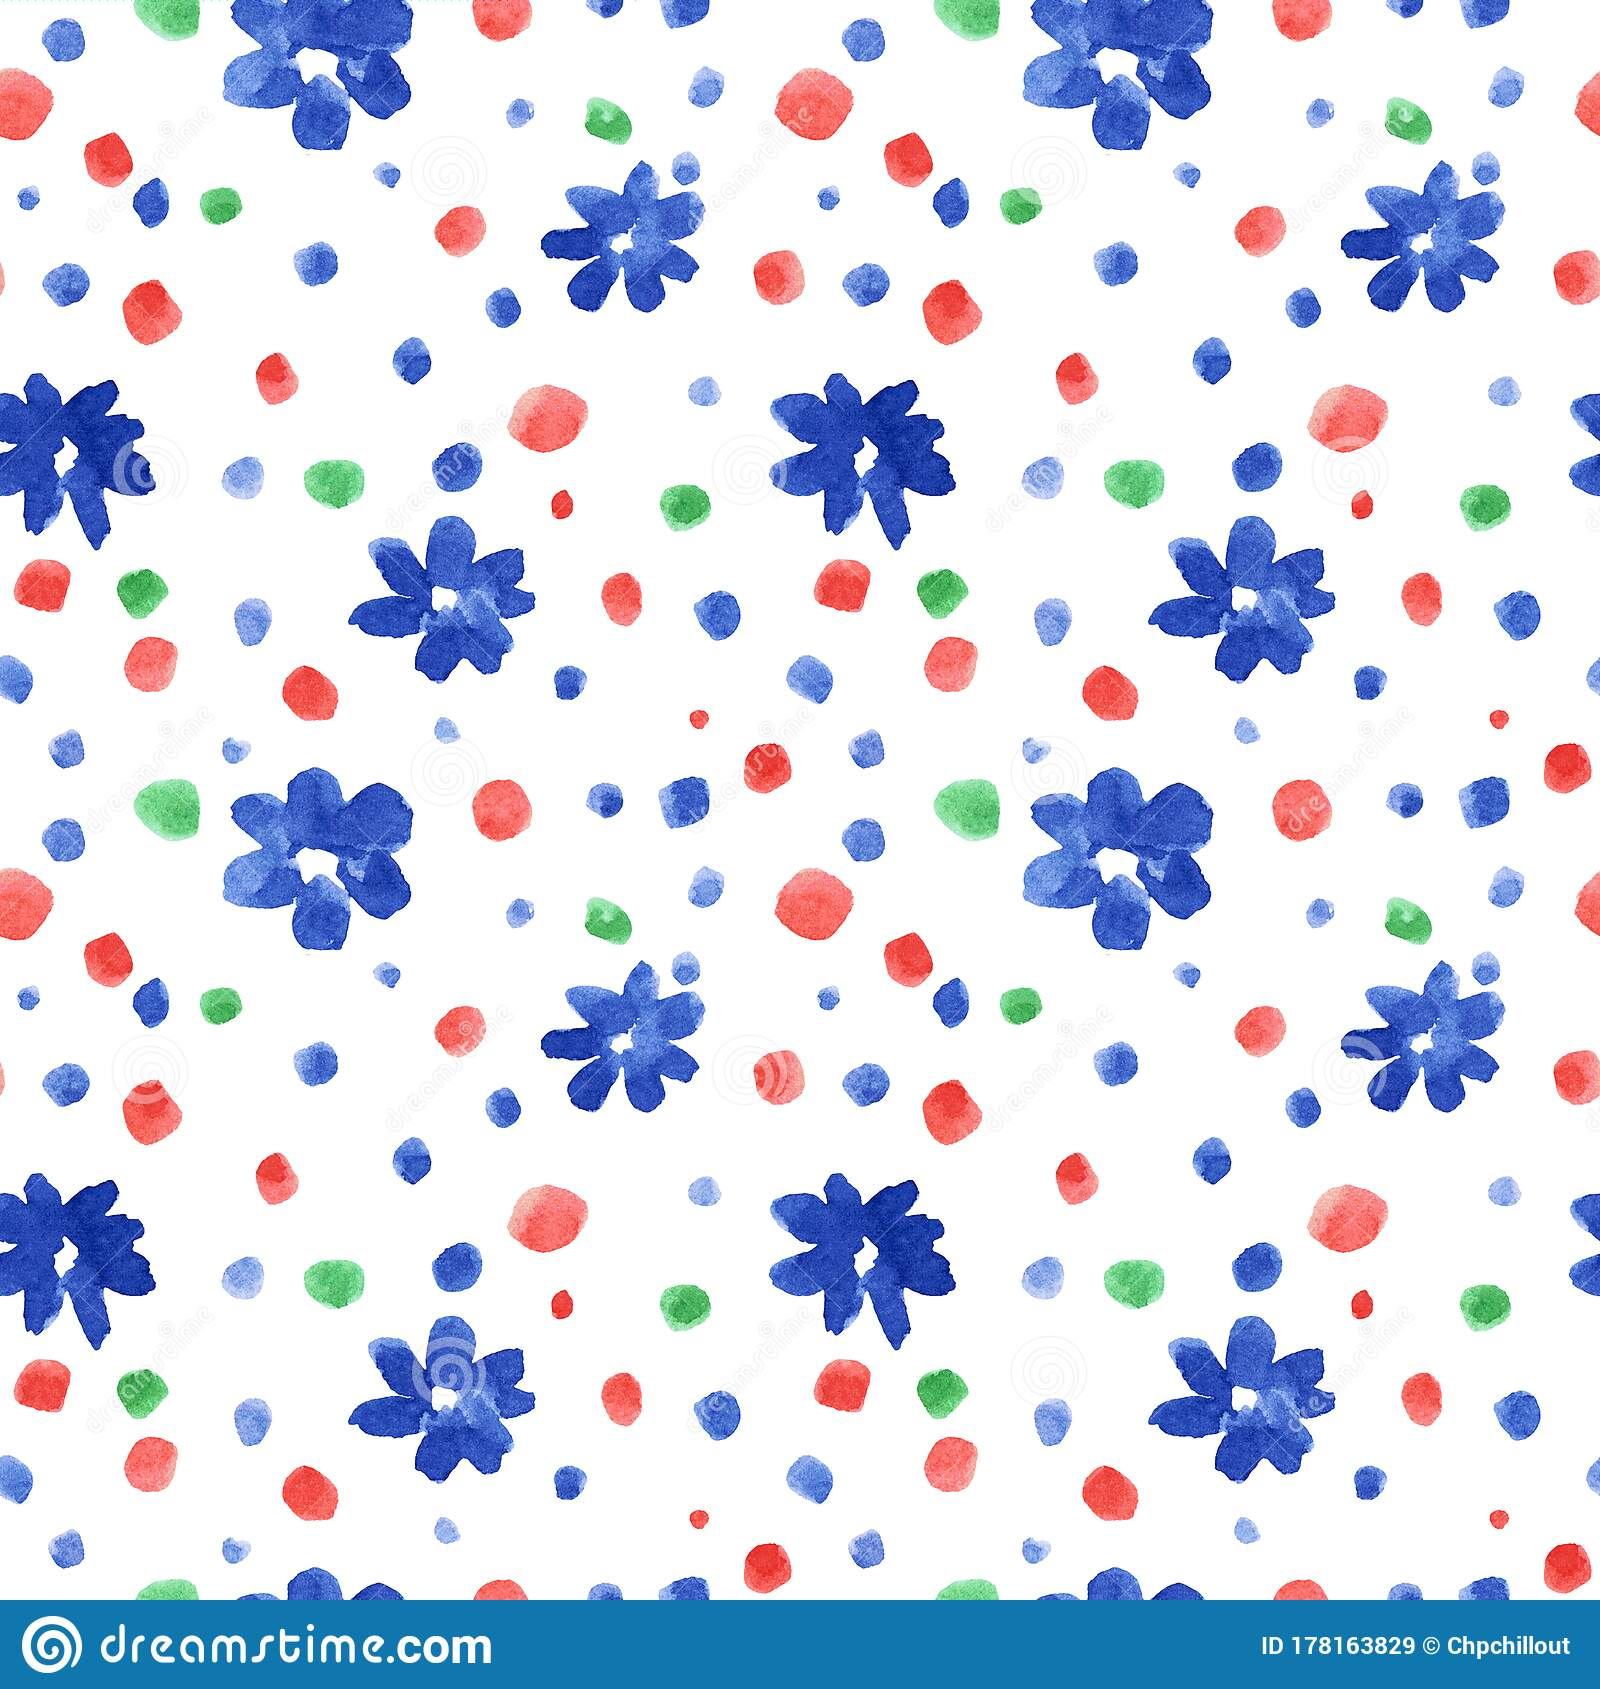 1 341 Simple Flower Drawing Photos Free Royalty Free Stock Photos From Dreamstime